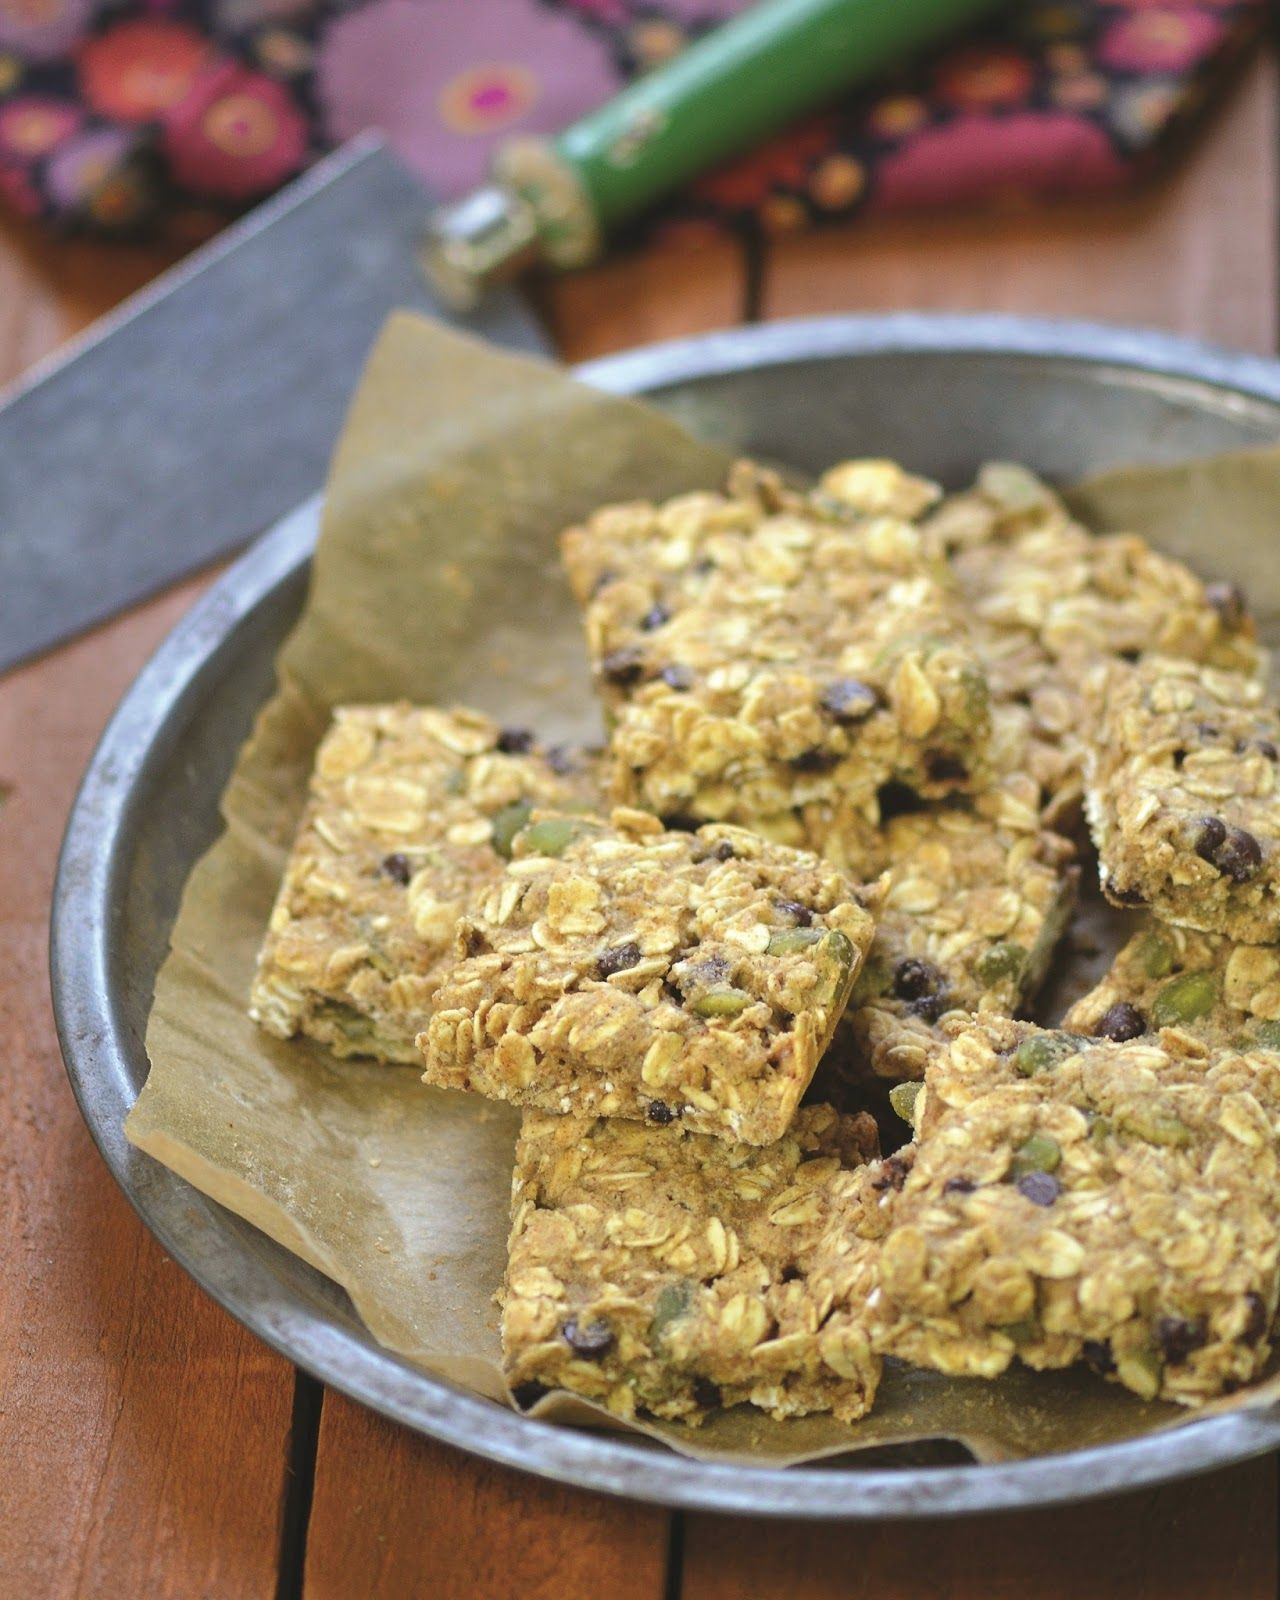 Pumpkin seed and chocolate chip oatmeal breakfast bars the china almost skinny vegan food the china study all star collection free recipe pumpkin seed and chocolate chip oatmeal breakfast bars forumfinder Gallery